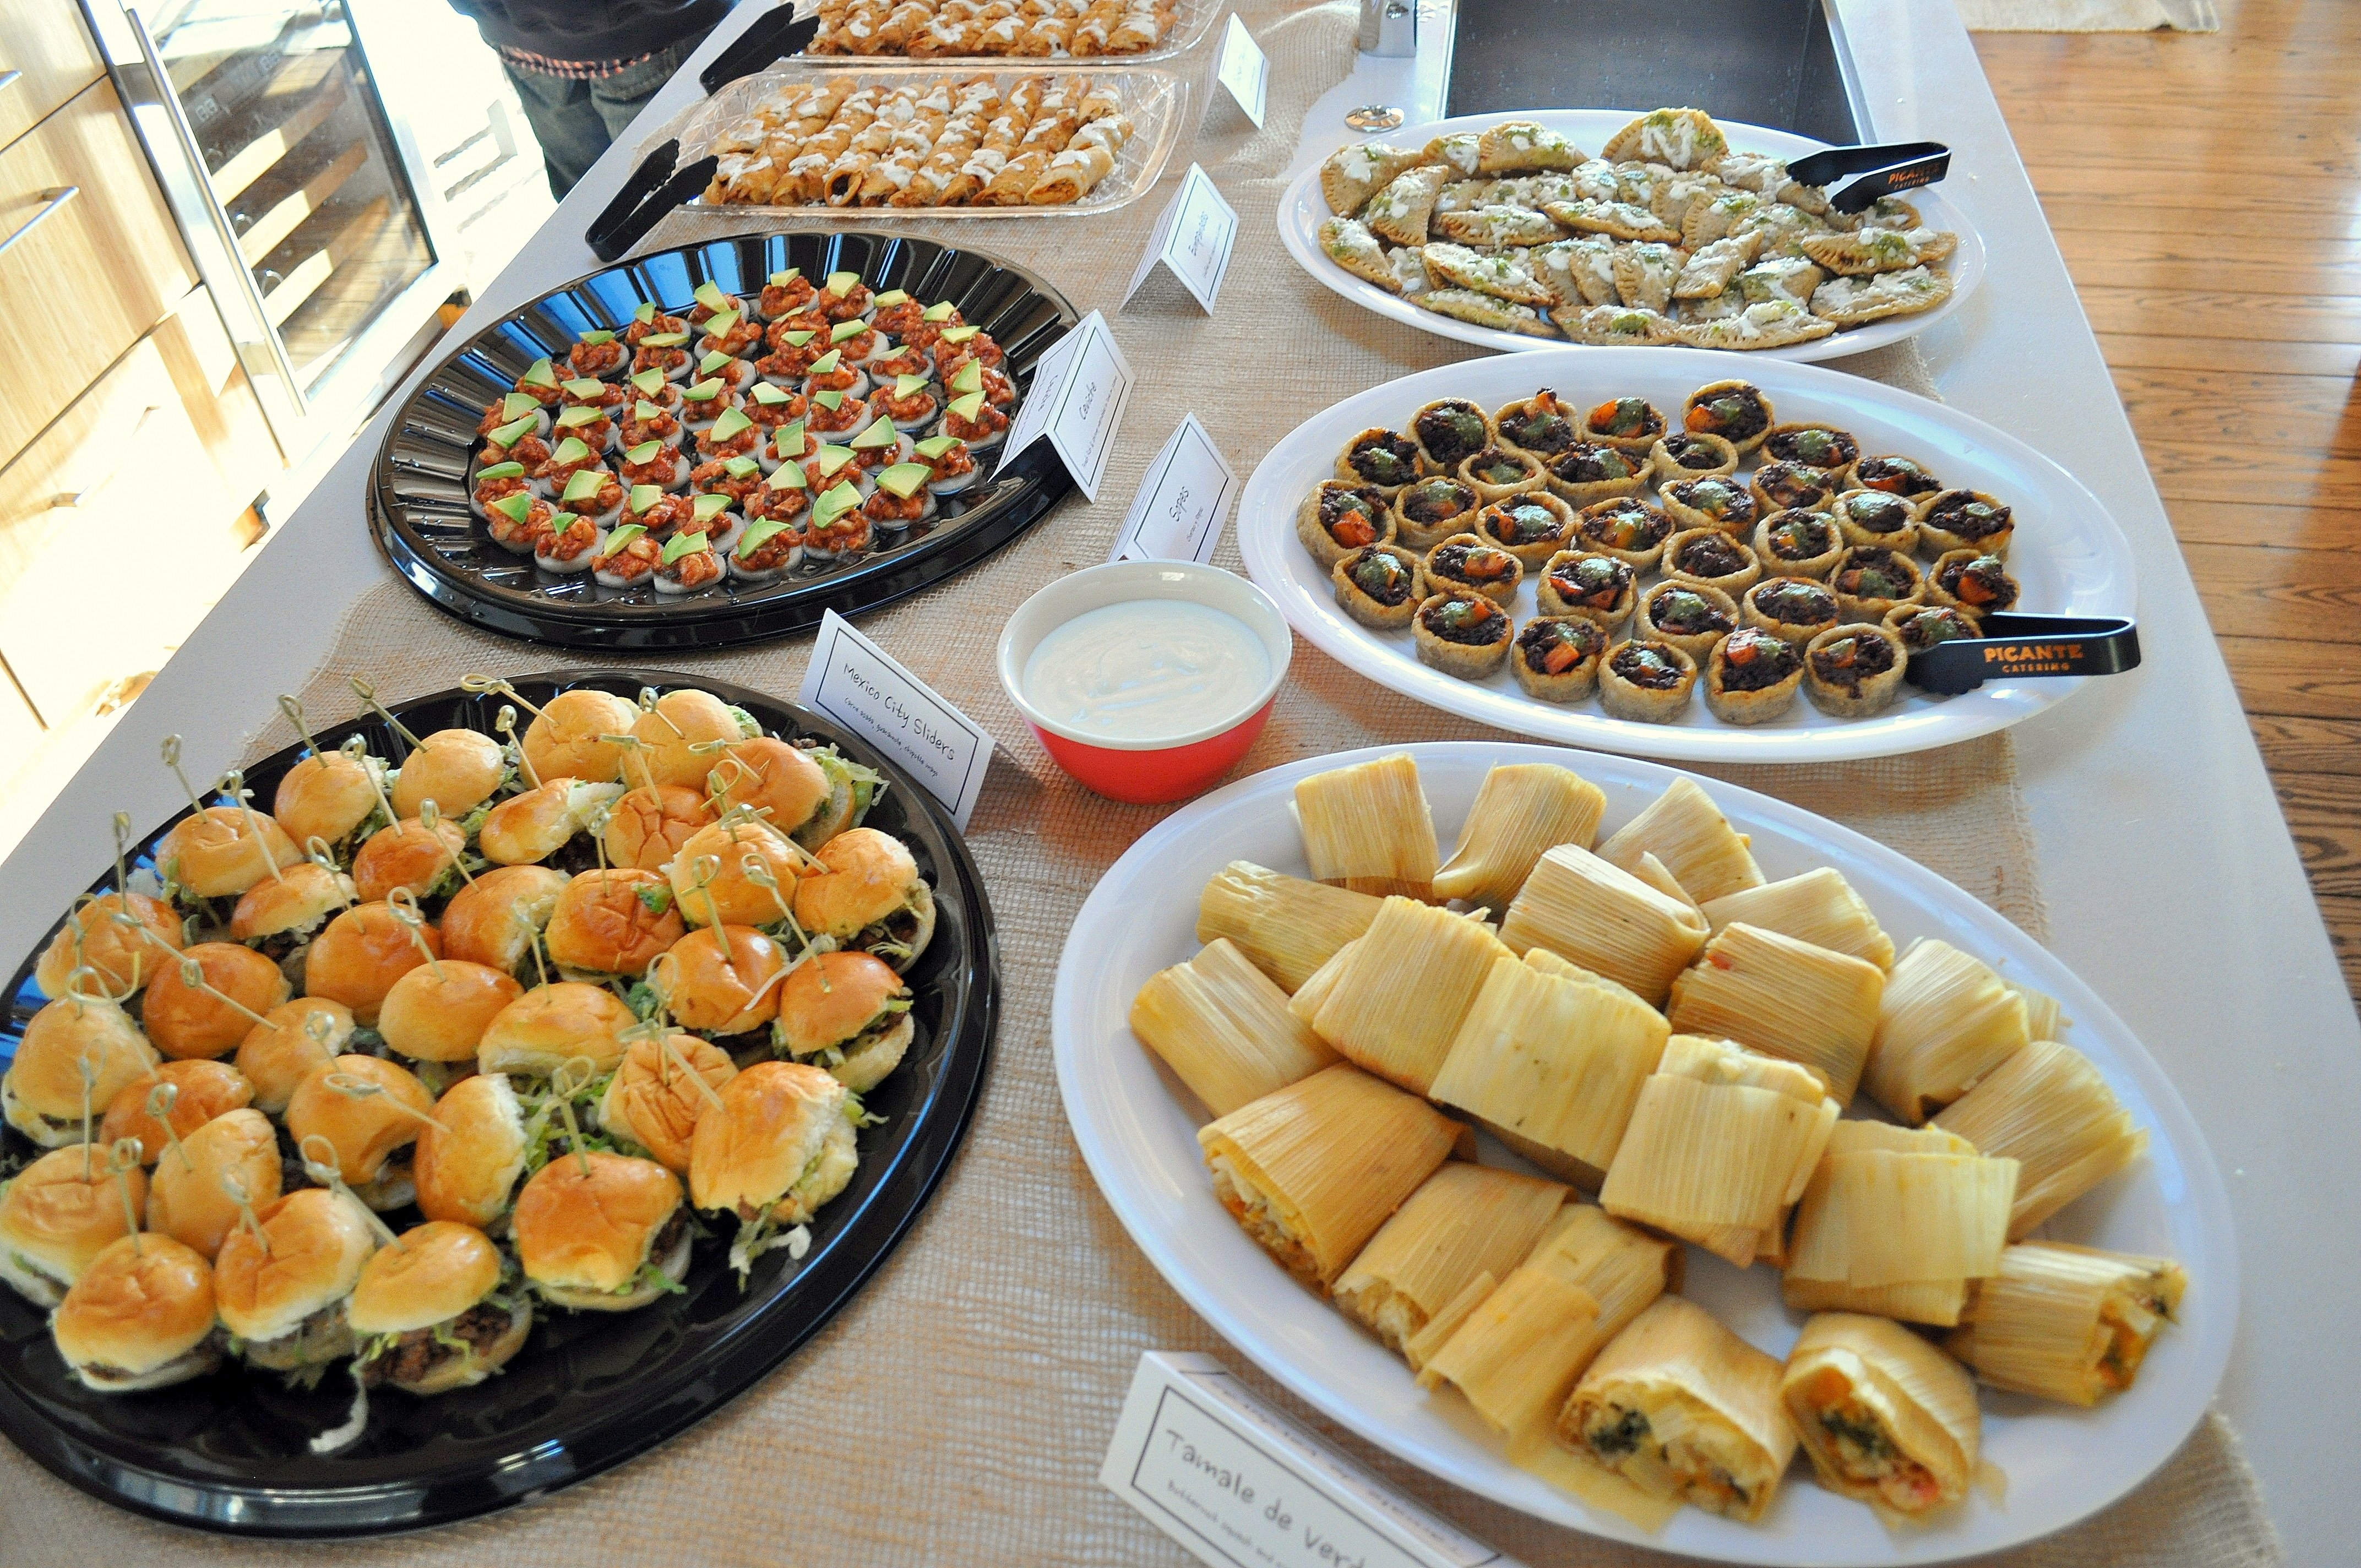 10 Unique Baby Shower Food Ideas For A Girl fall baby shower food ideas loversiq 5 2020